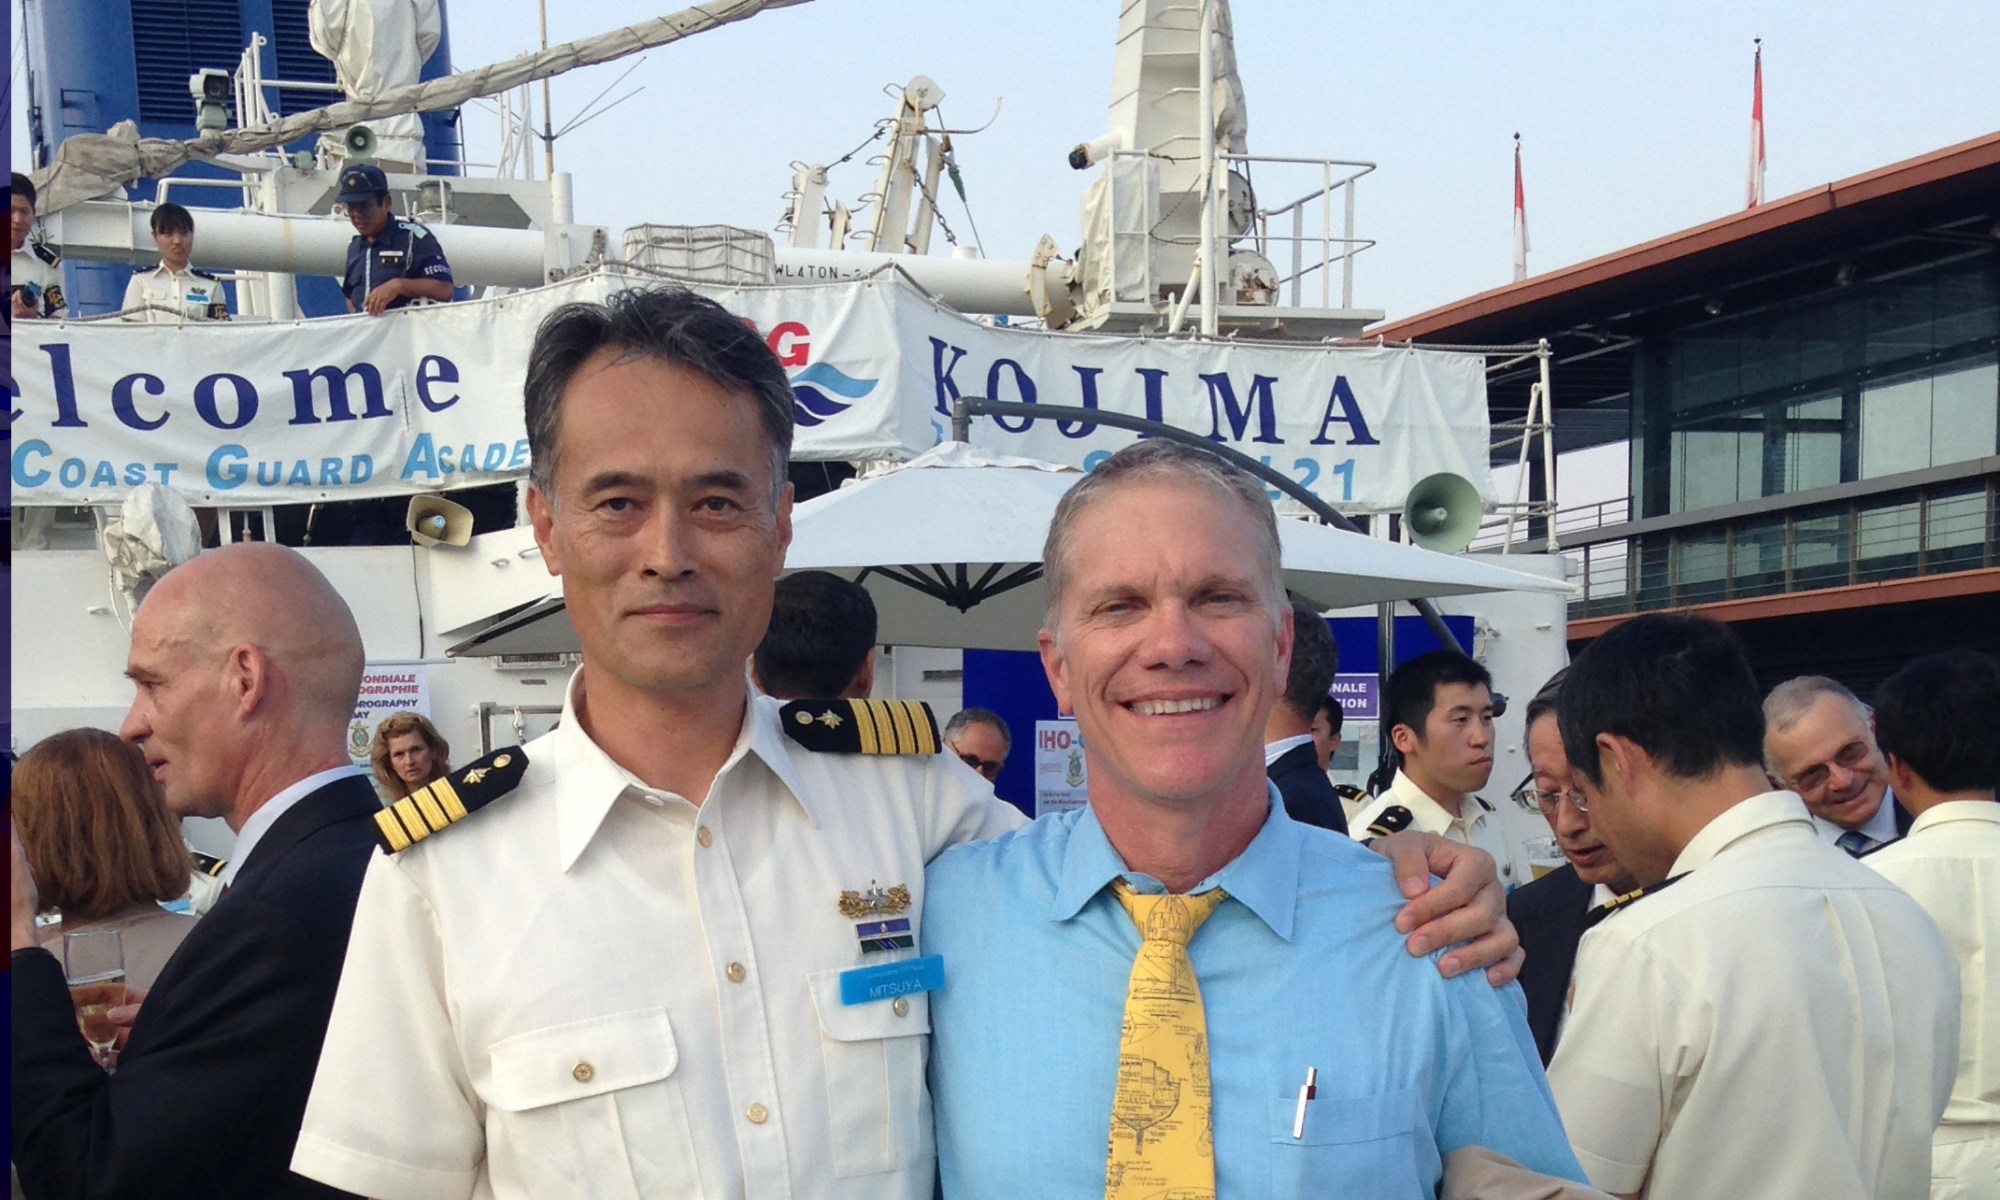 Coast Survey's Tom Loeper and Captain Tetsushi Mitsuya, commanding officer of the training ship Kojima of Japan Coast Guard, attend the IHO event onboard the Kojima.